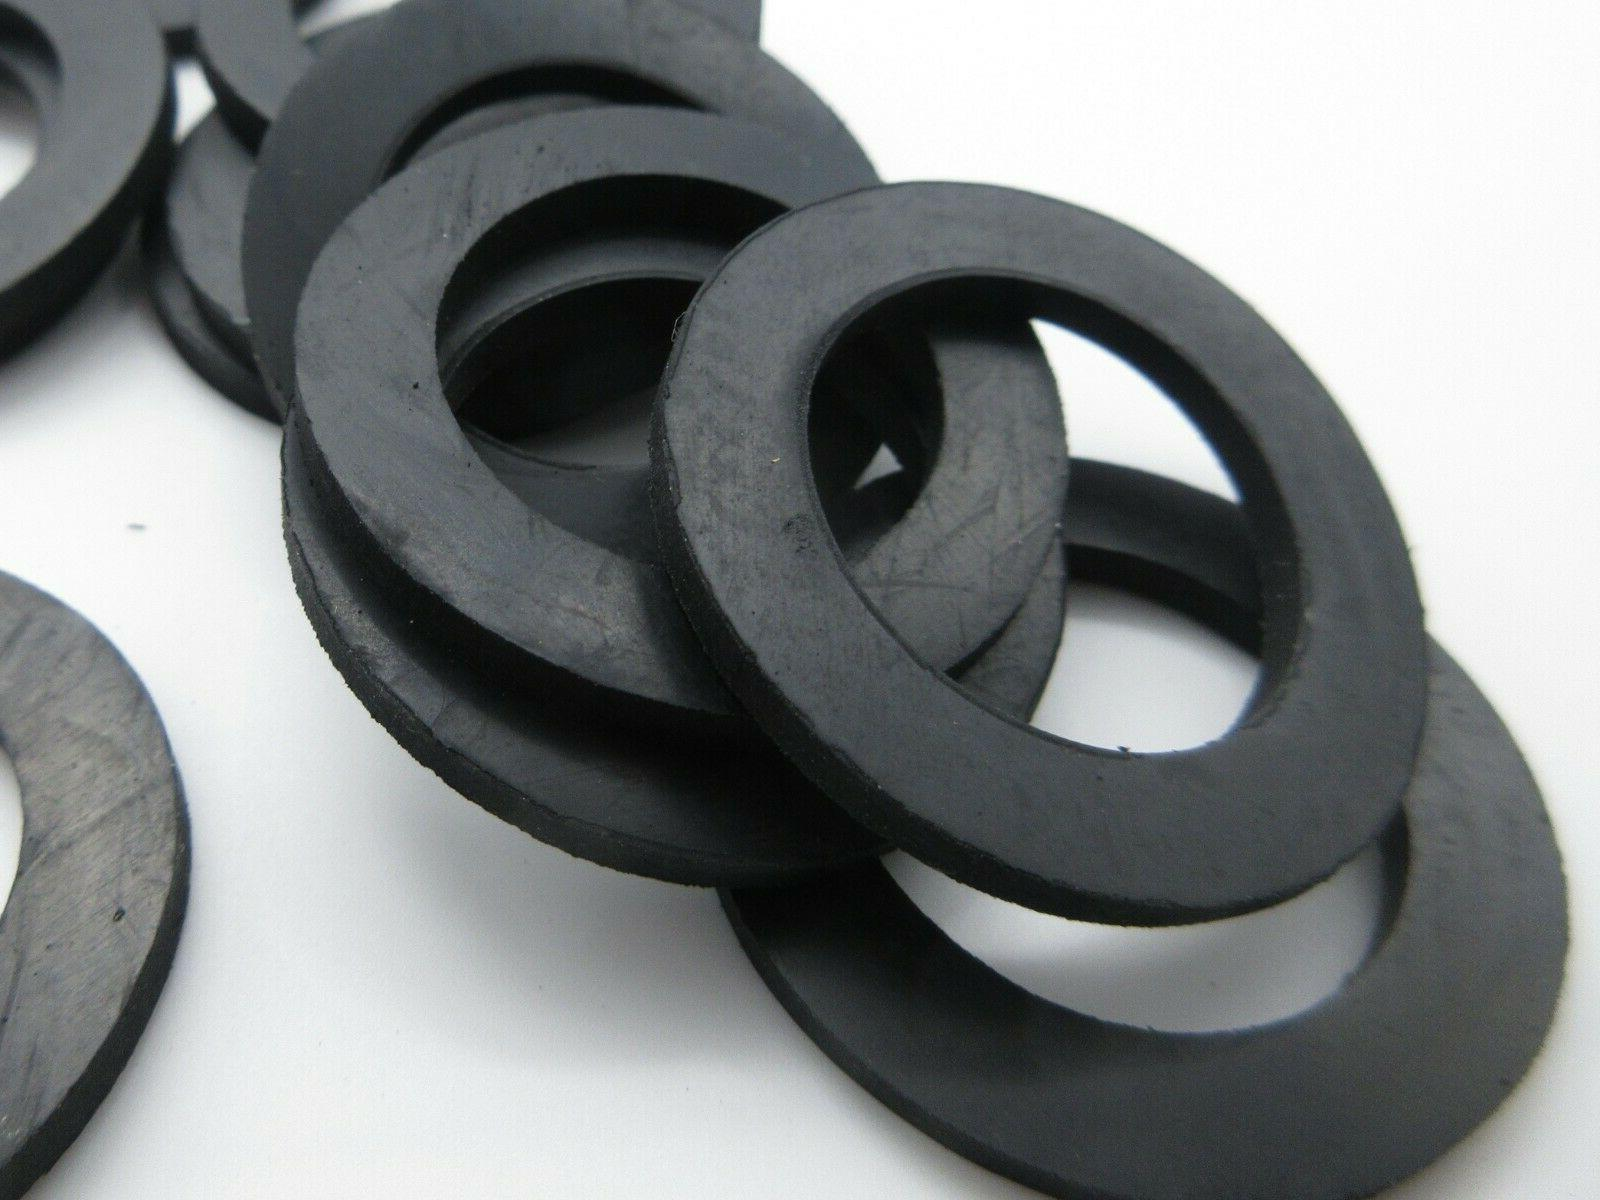 barbell and dumbell 1 id thick rubber